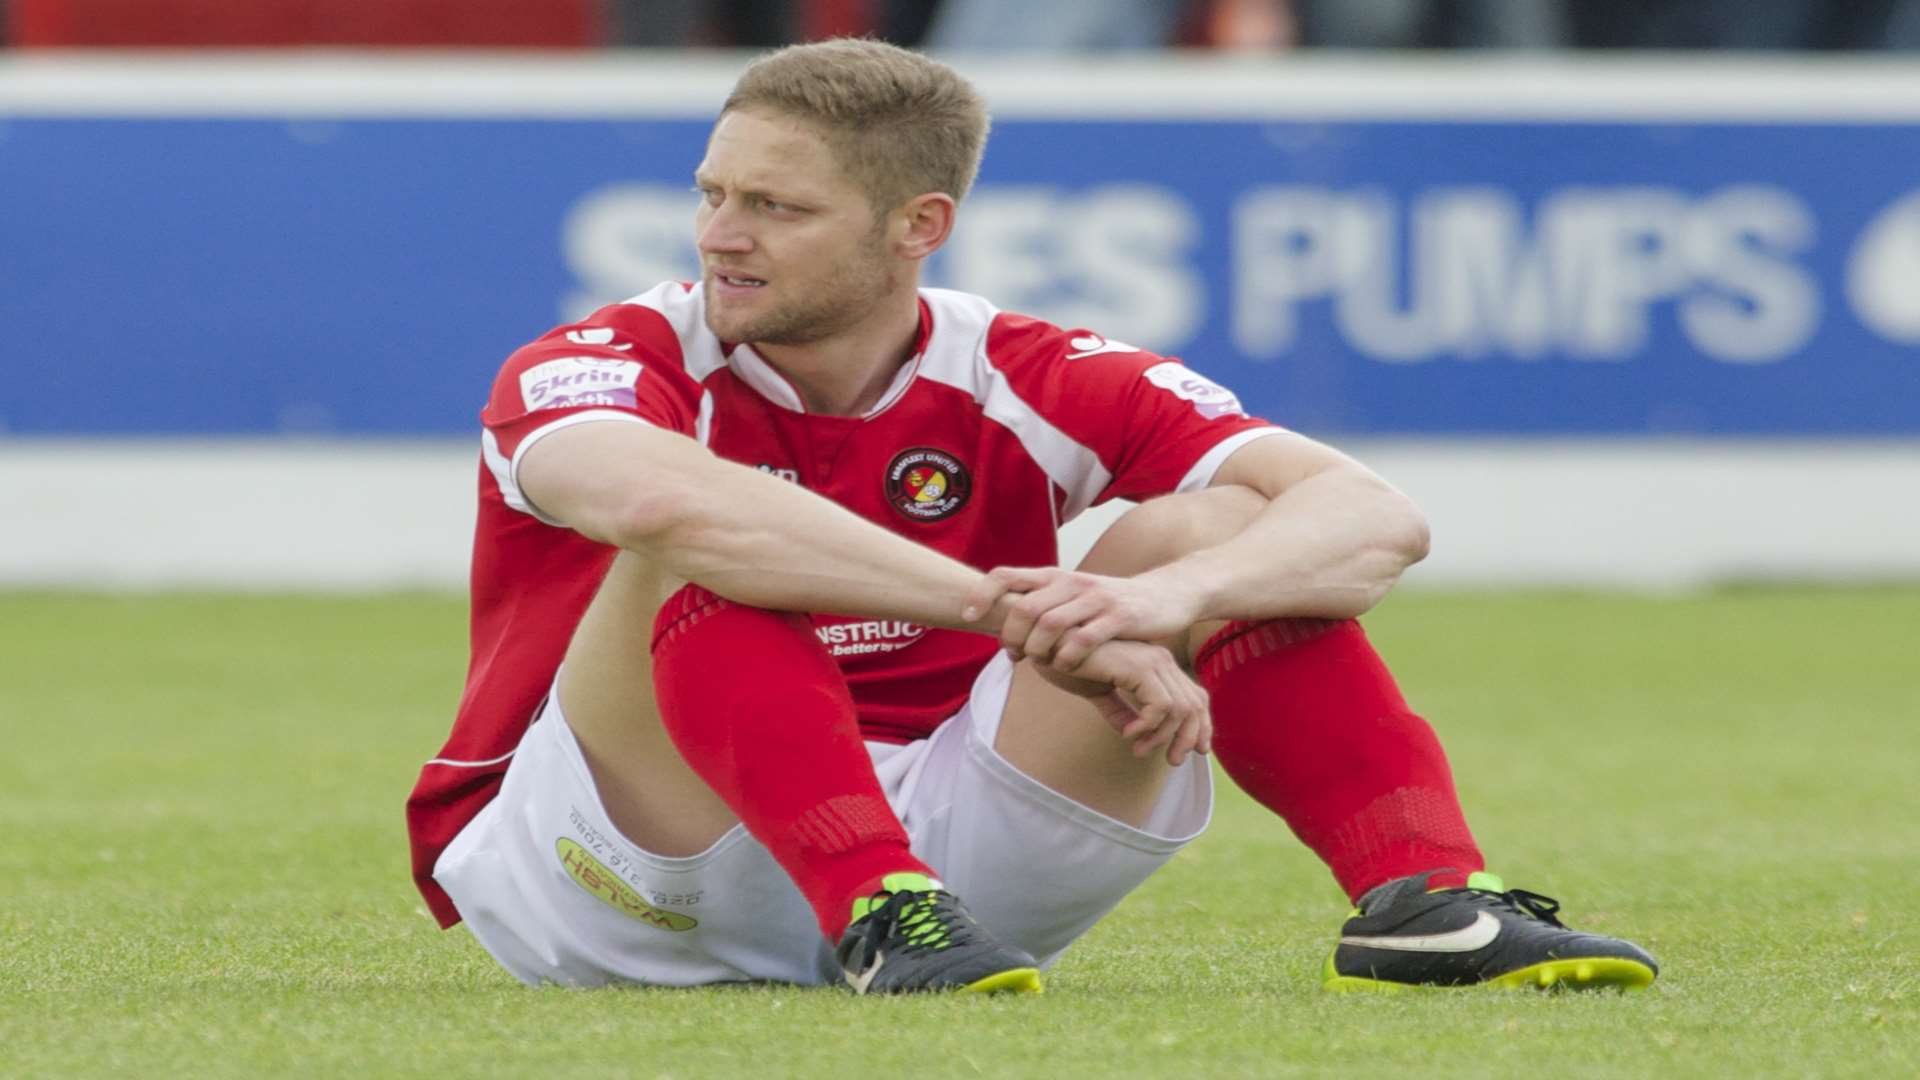 A dejected Ben May after Ebbsfleet's defeat in the play-off final Picture: Andy Payton